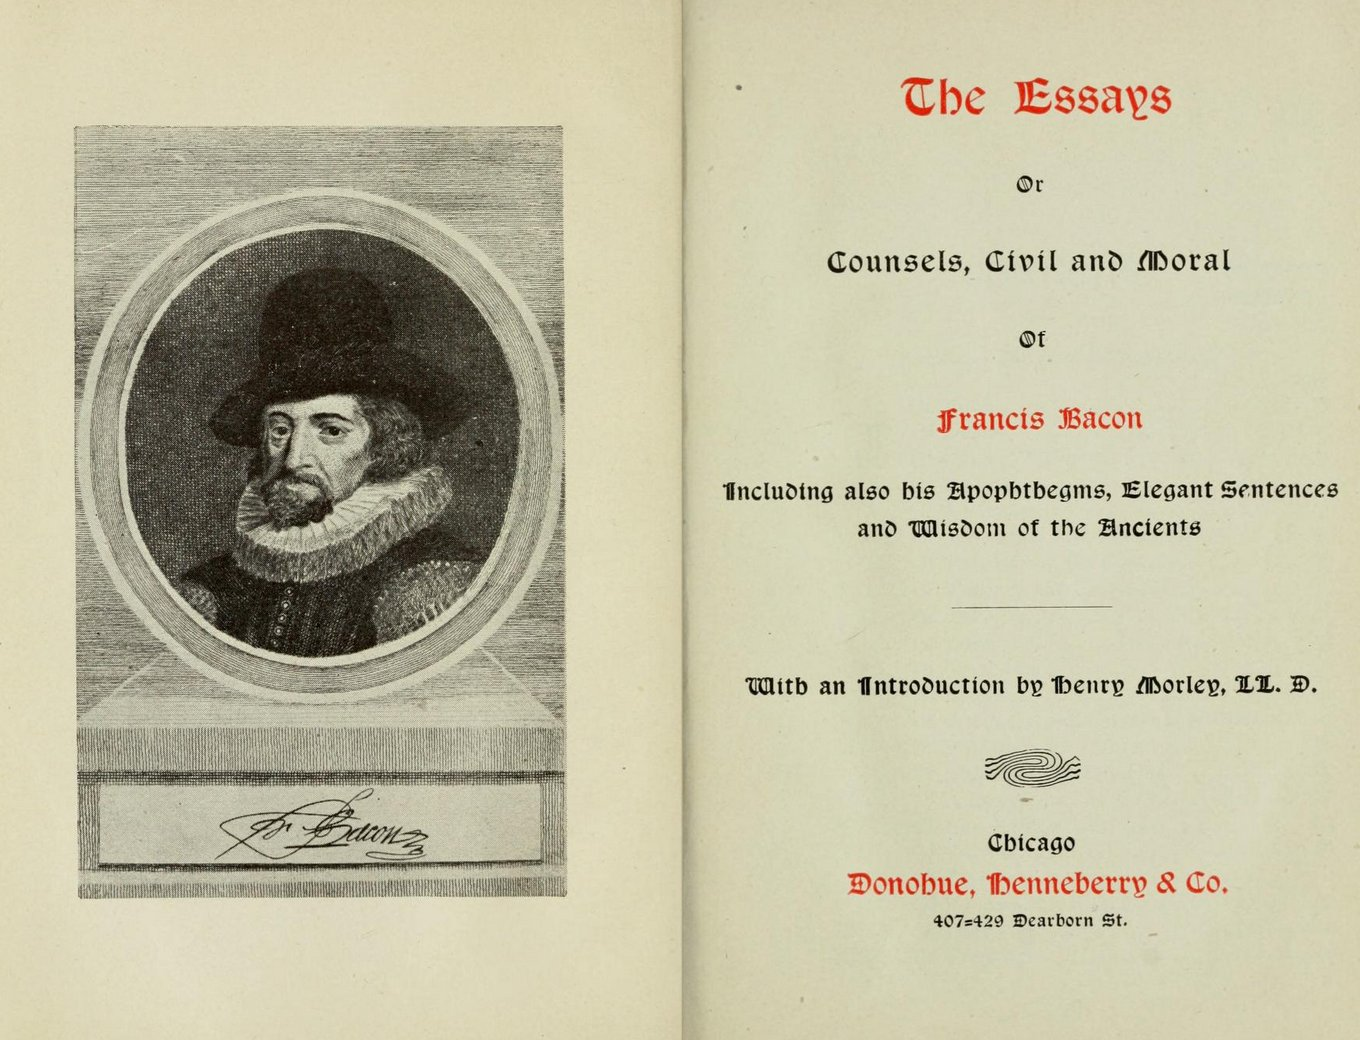 sir francis bacon selected essays Title: the essays of francis bacon author: francis bacon, mary augusta scott created date: 9/10/2008 4:56:28 pm.